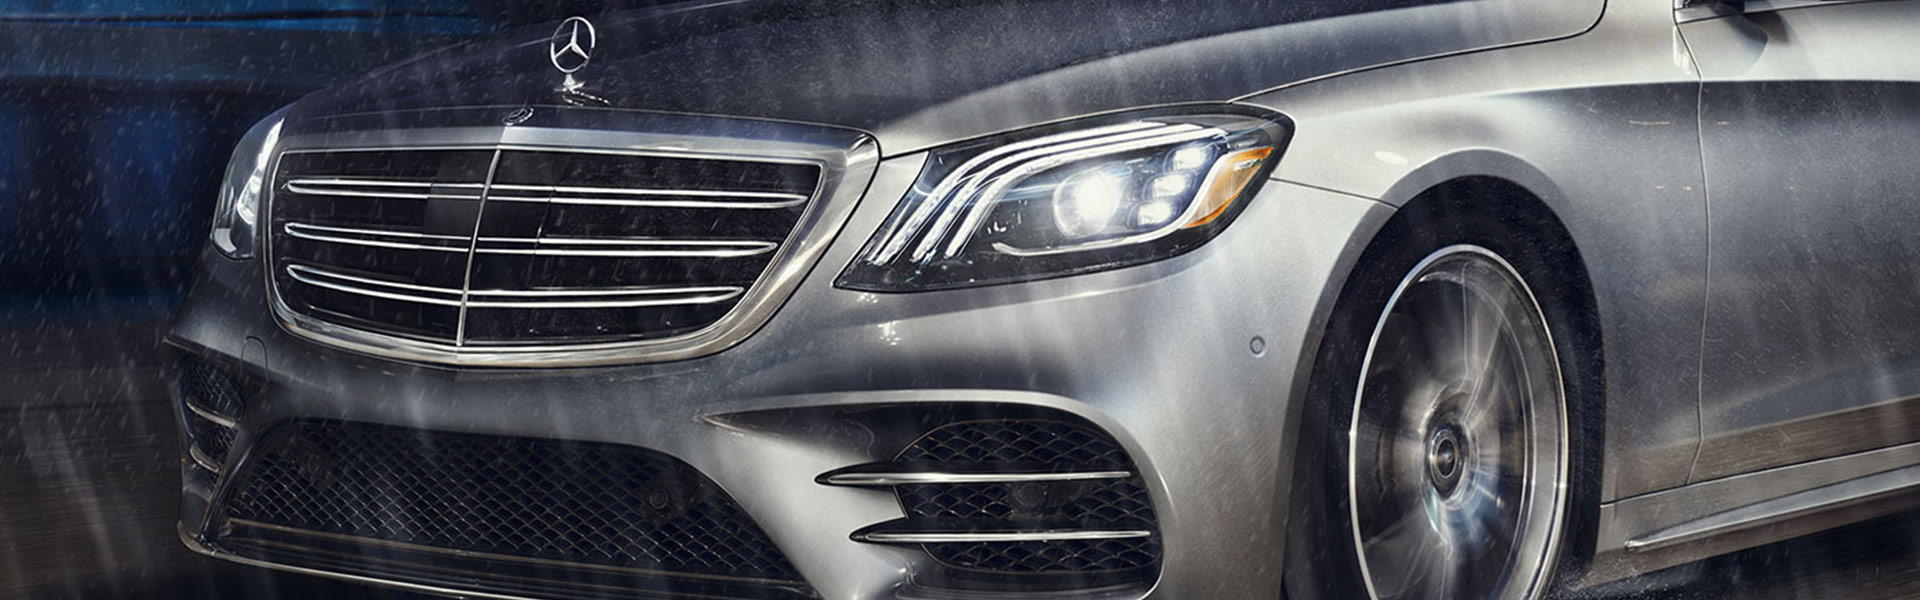 Mercedes-Benz S-Class driving in the rain